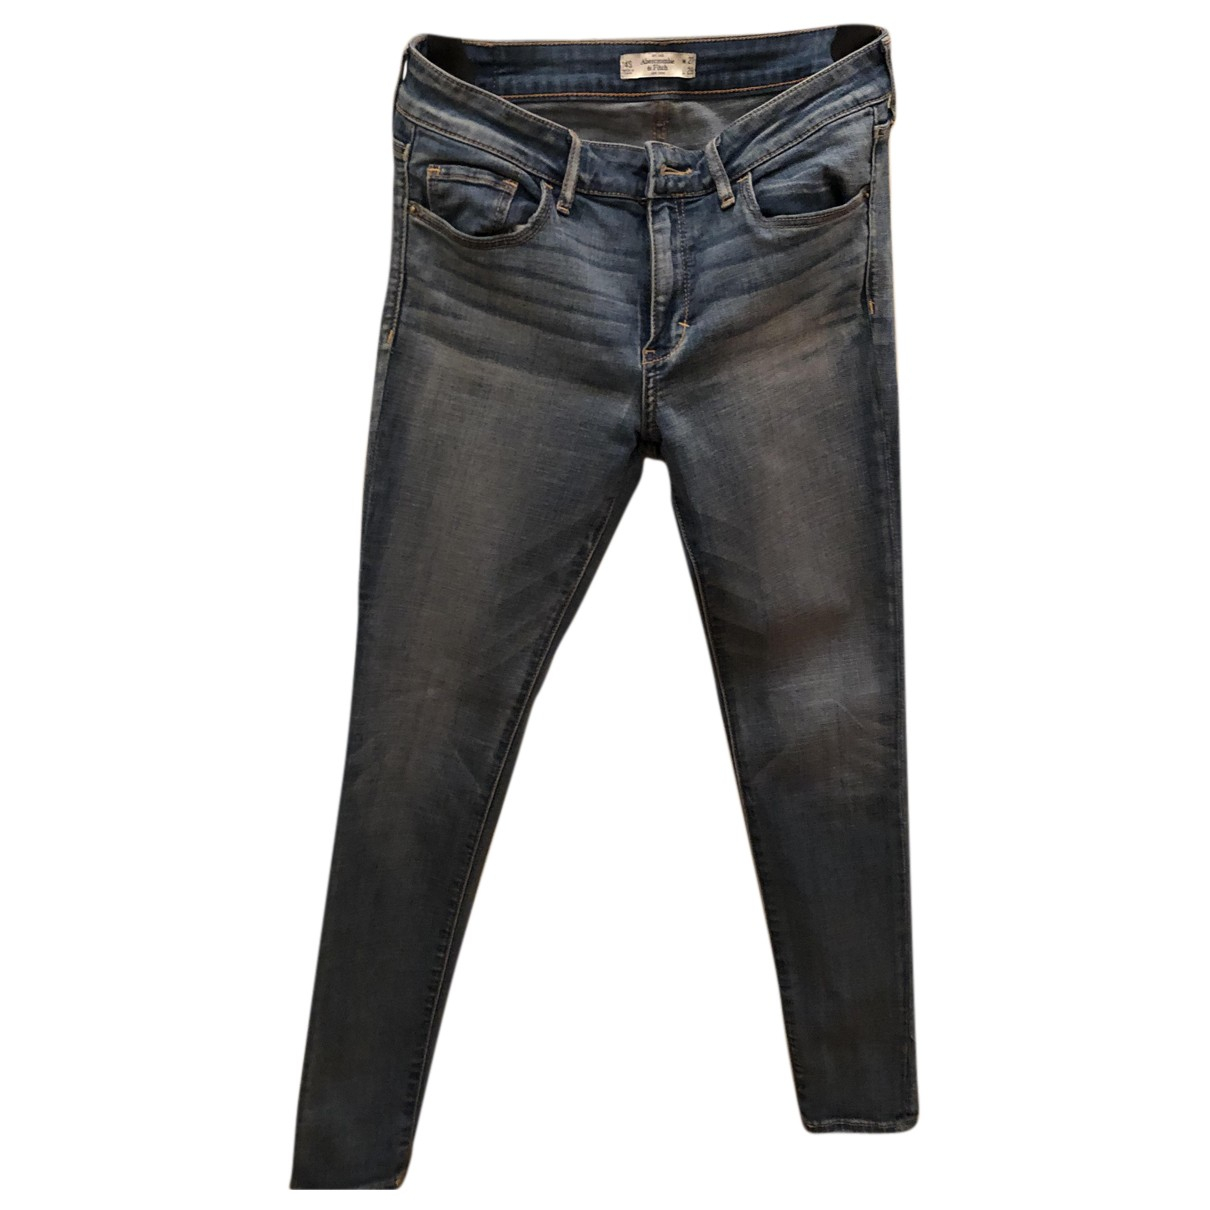 Abercrombie & Fitch N Blue Cotton - elasthane Jeans for Women 27 US